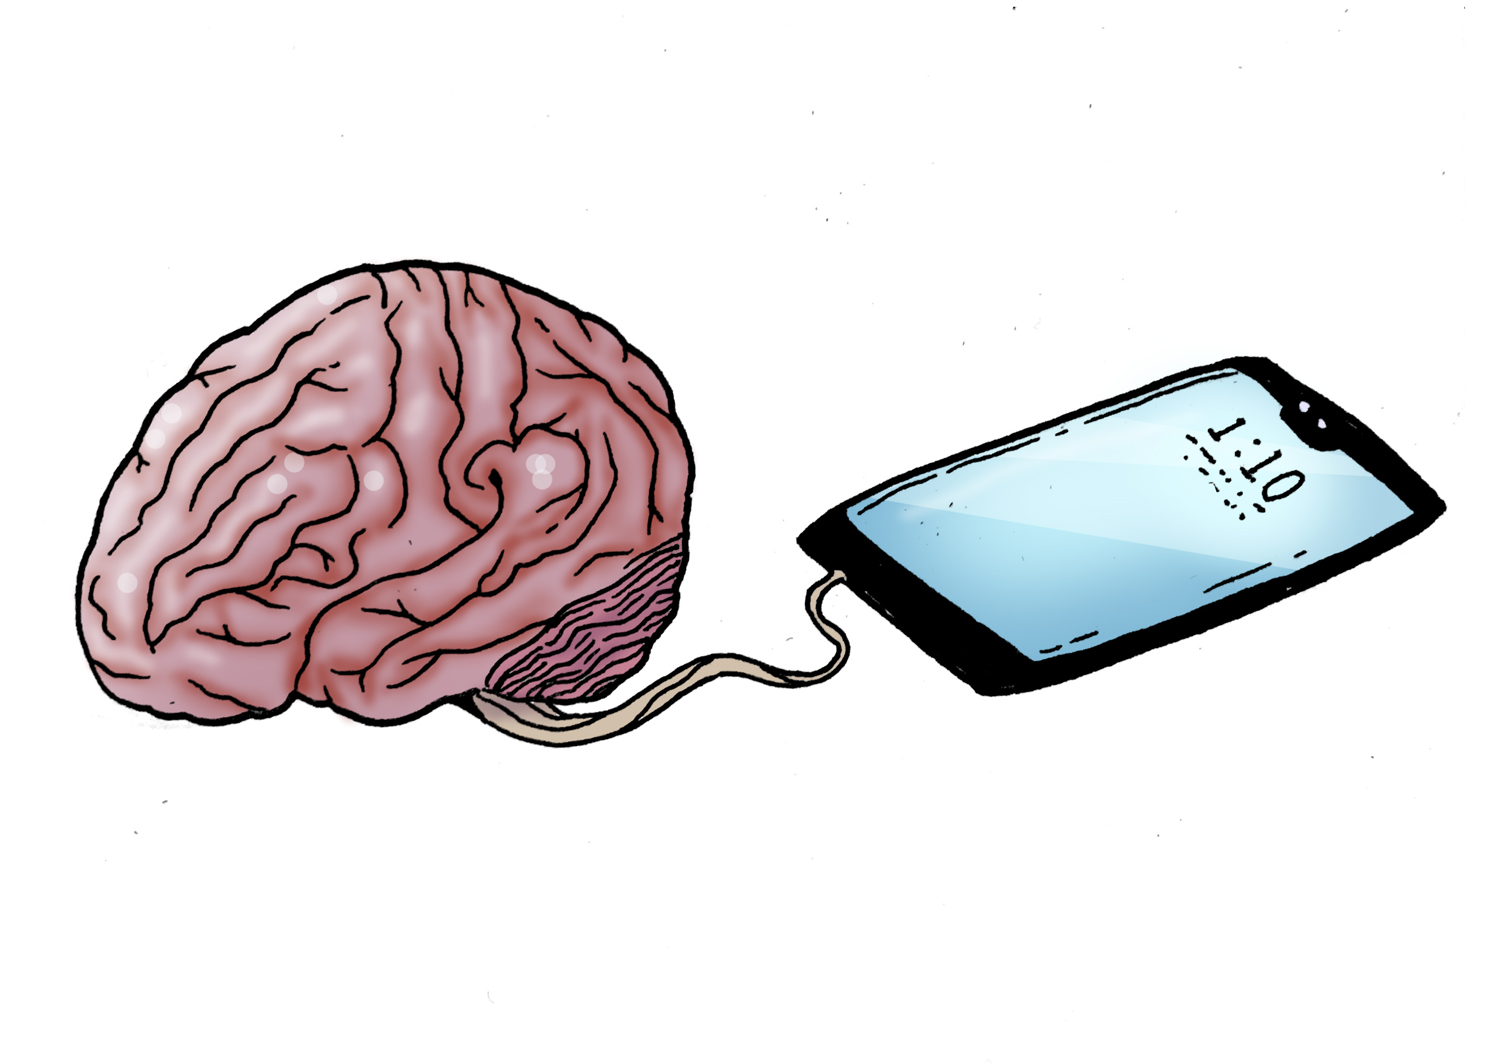 CellPhones Are The Prime Reason For Mental Problems